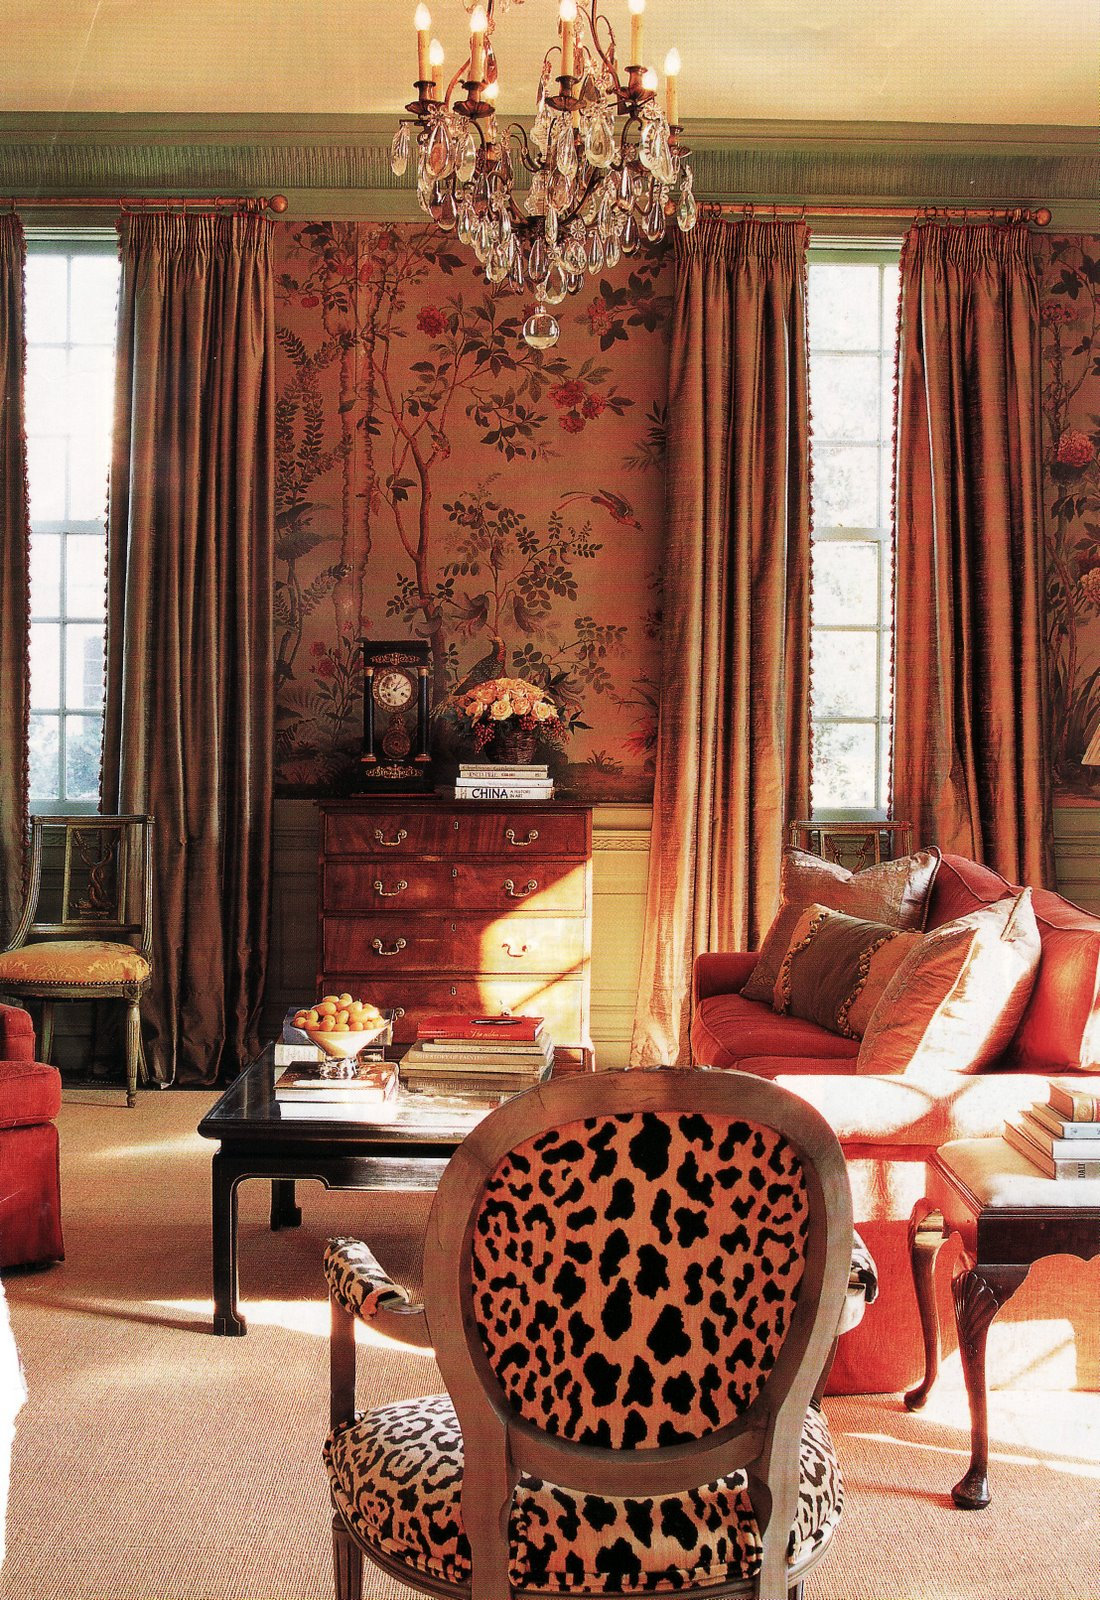 Eye for design decorating with animal prints and hides faux of course for Leopard print living room ideas